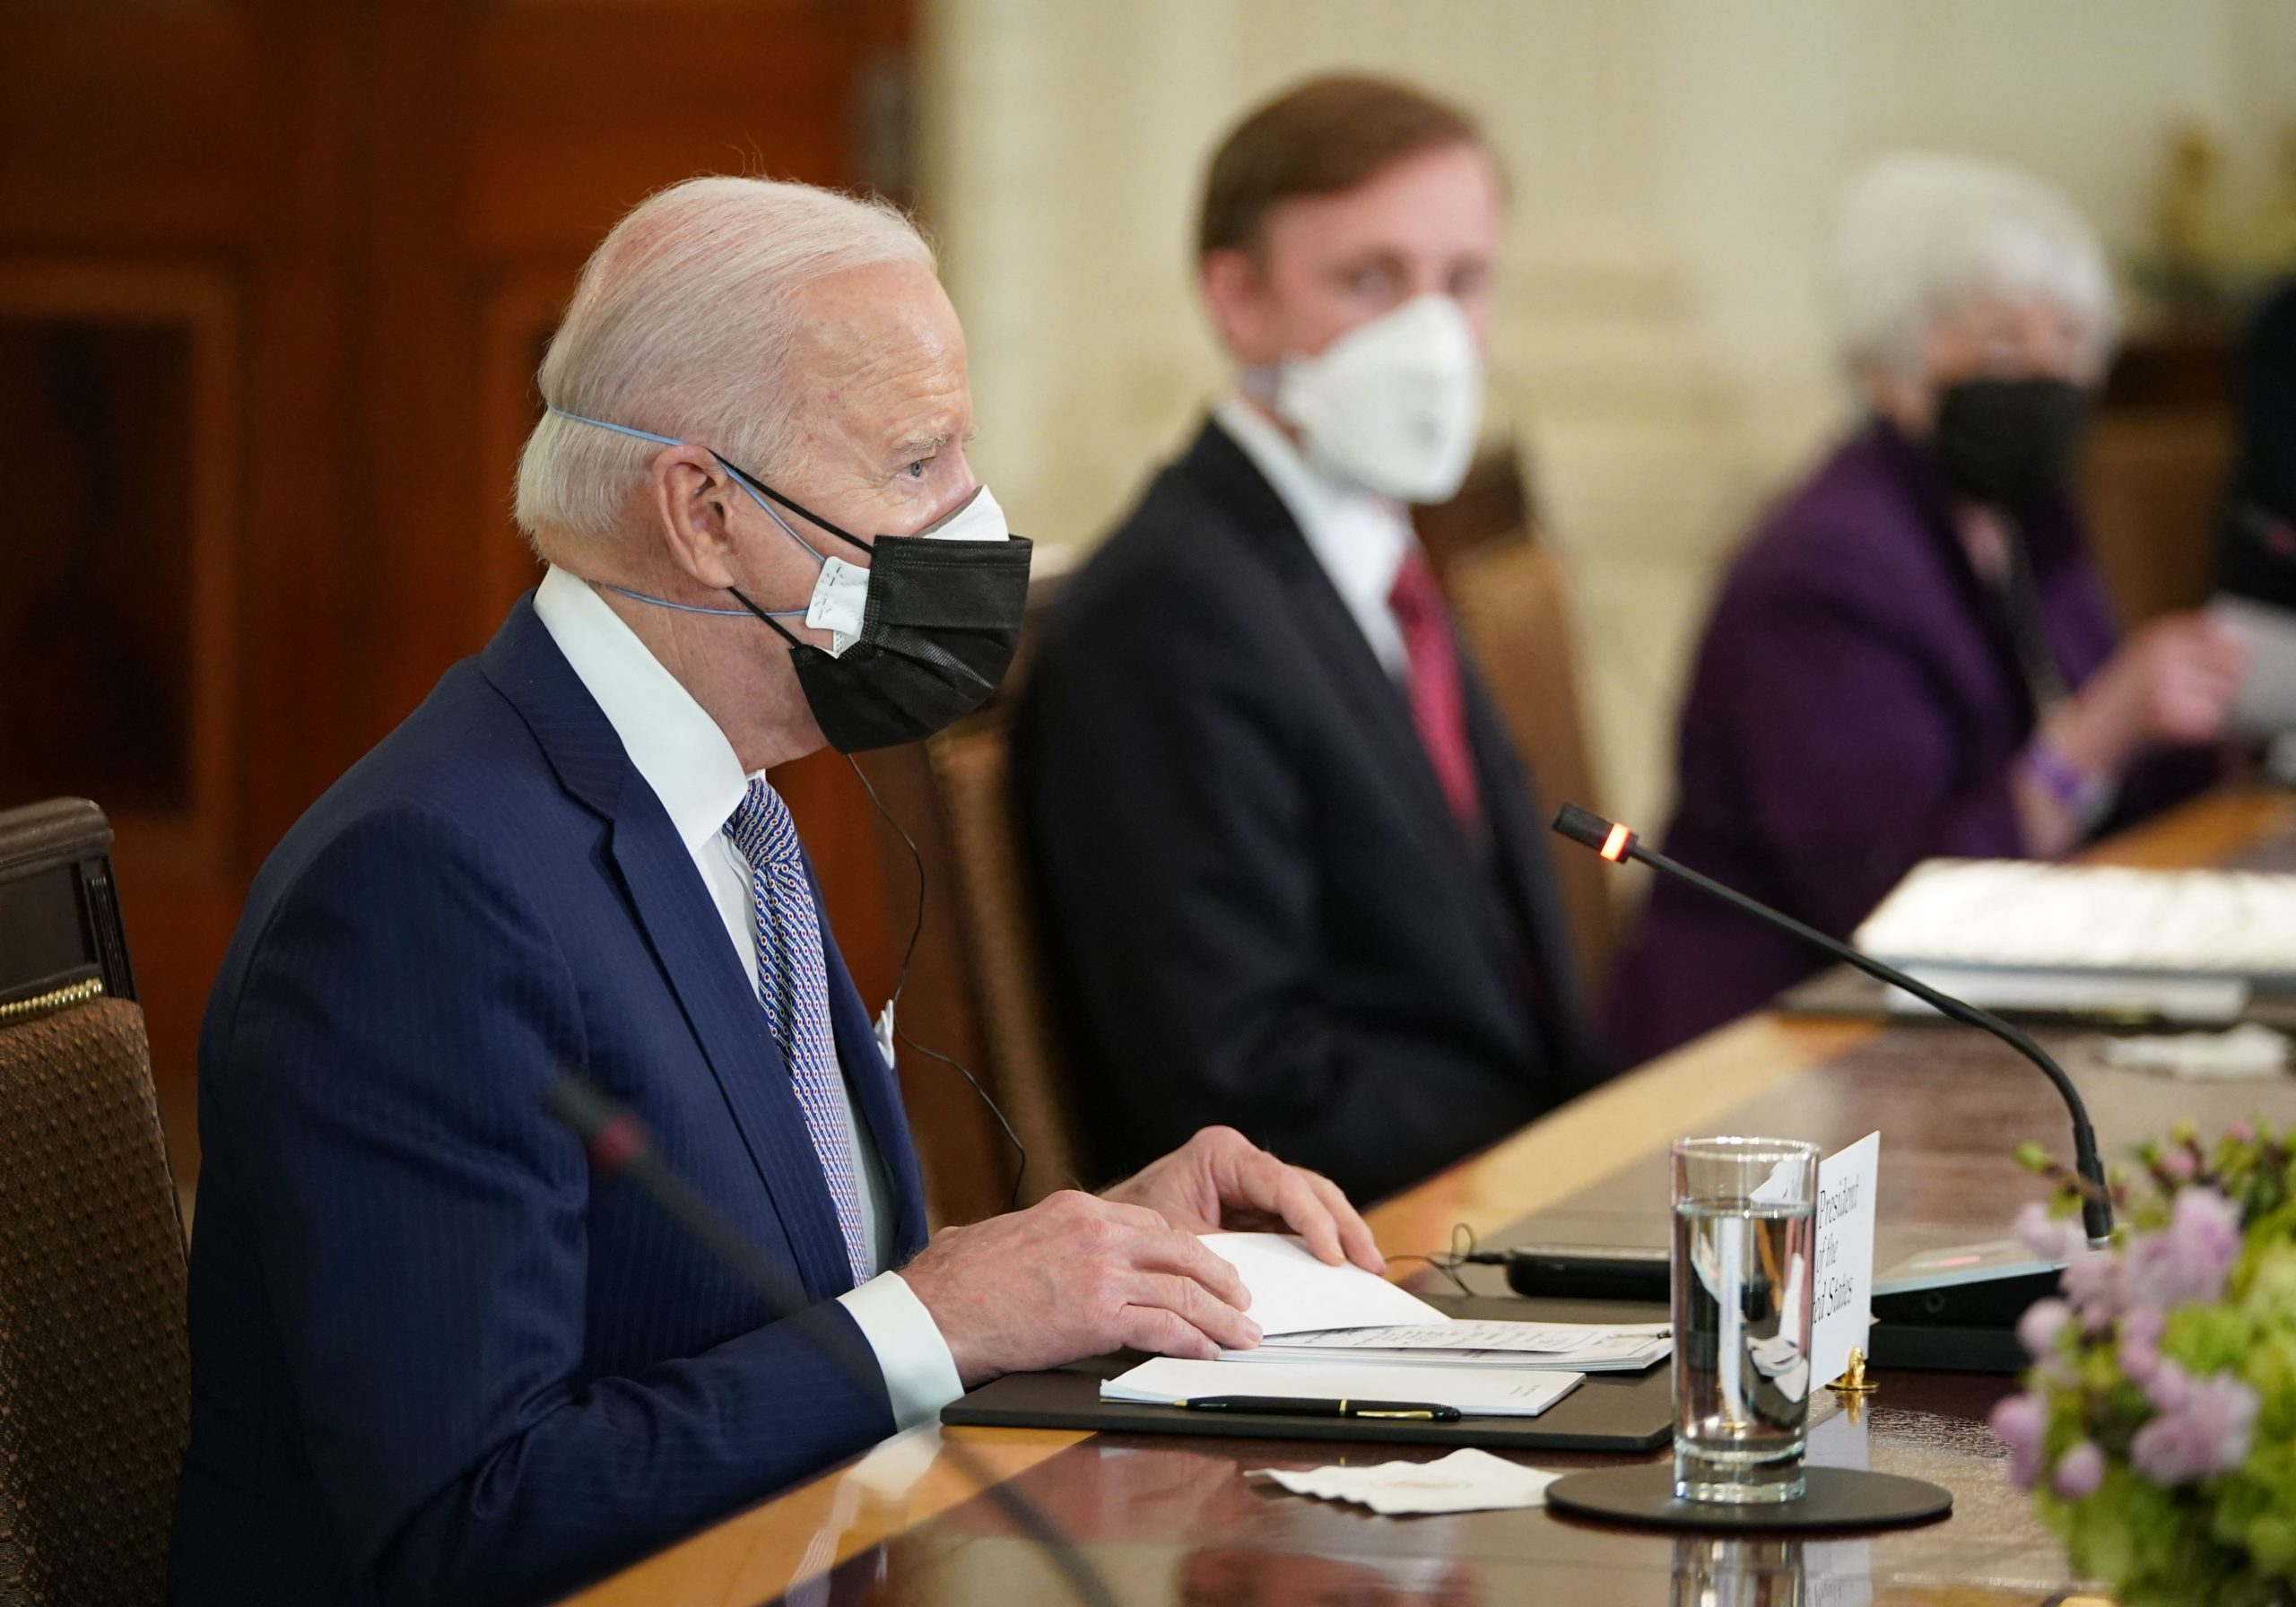 US President Joe Biden takes part in an expanded bilateral meeting with Japan's Prime Minister Yoshihide Suga in the State Dining Room of the White House in Washington, DC on April 16, 2021. (Photo by MANDEL NGAN/AFP via Getty Images)